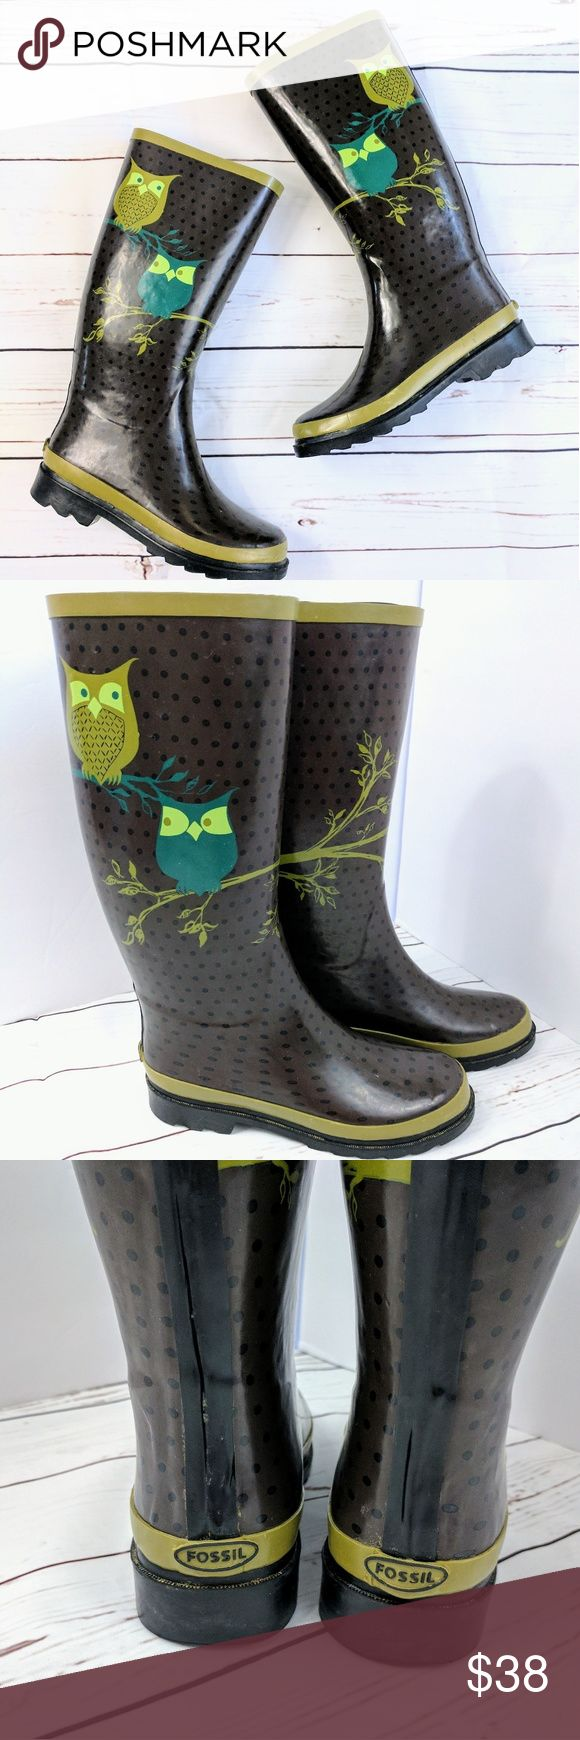 FOSSIL | owl wellies Fossil brown polka dot rain boots with green branch/owls décor. Excellent condition, Lining is fully intact, no stains, tears or holes. Boots have been worn only a couple times.  Boots will be shipped folded in a Medium Flat rate Box.   Approximate measurements  Boot shaft: 13 inches  Flat across boot opening: 7 inches Fossil Shoes Winter & Rain Boots